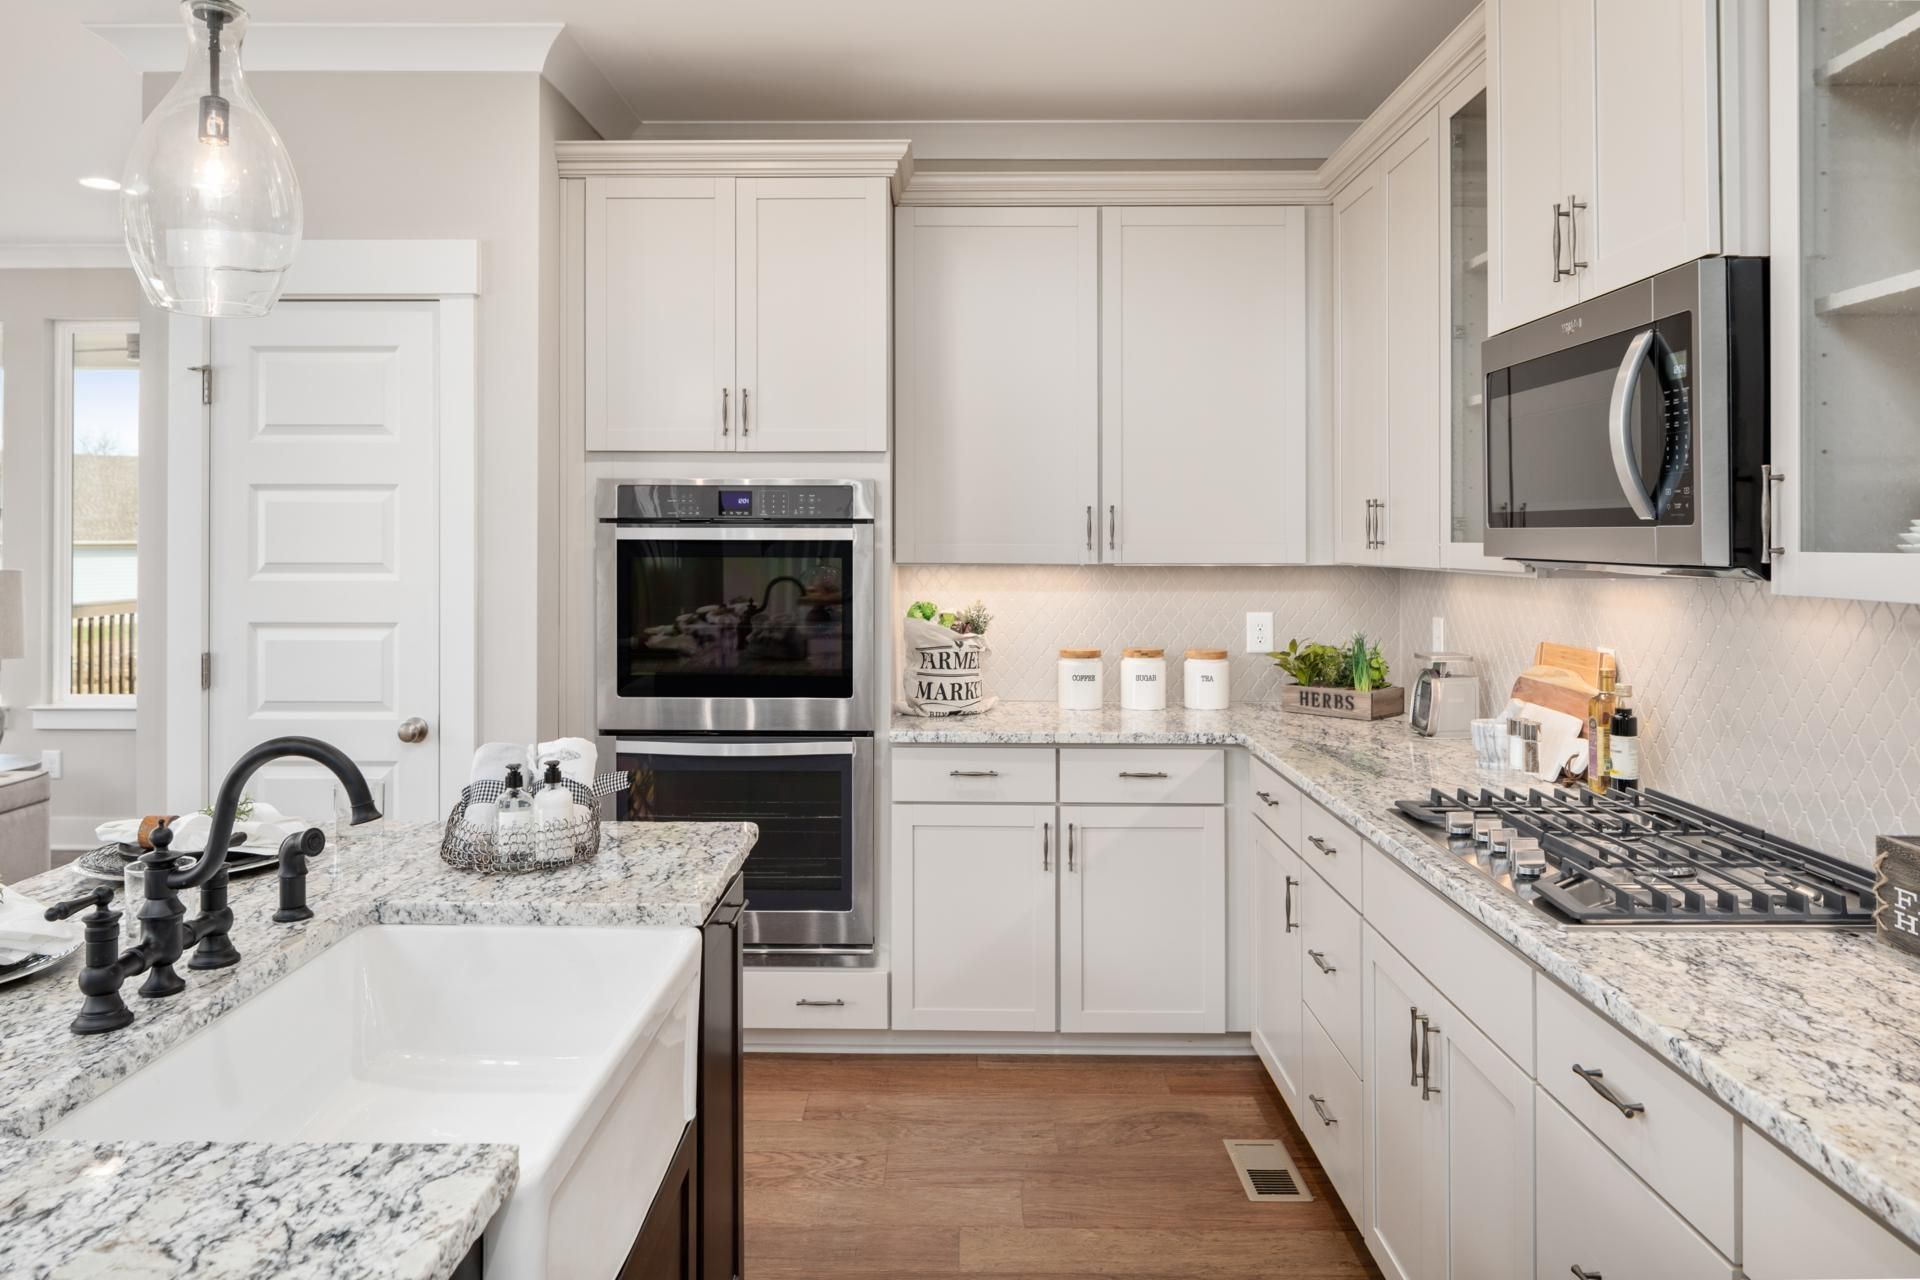 Drees Homes Kinsley kitchen with farmhouse sink, a diamond